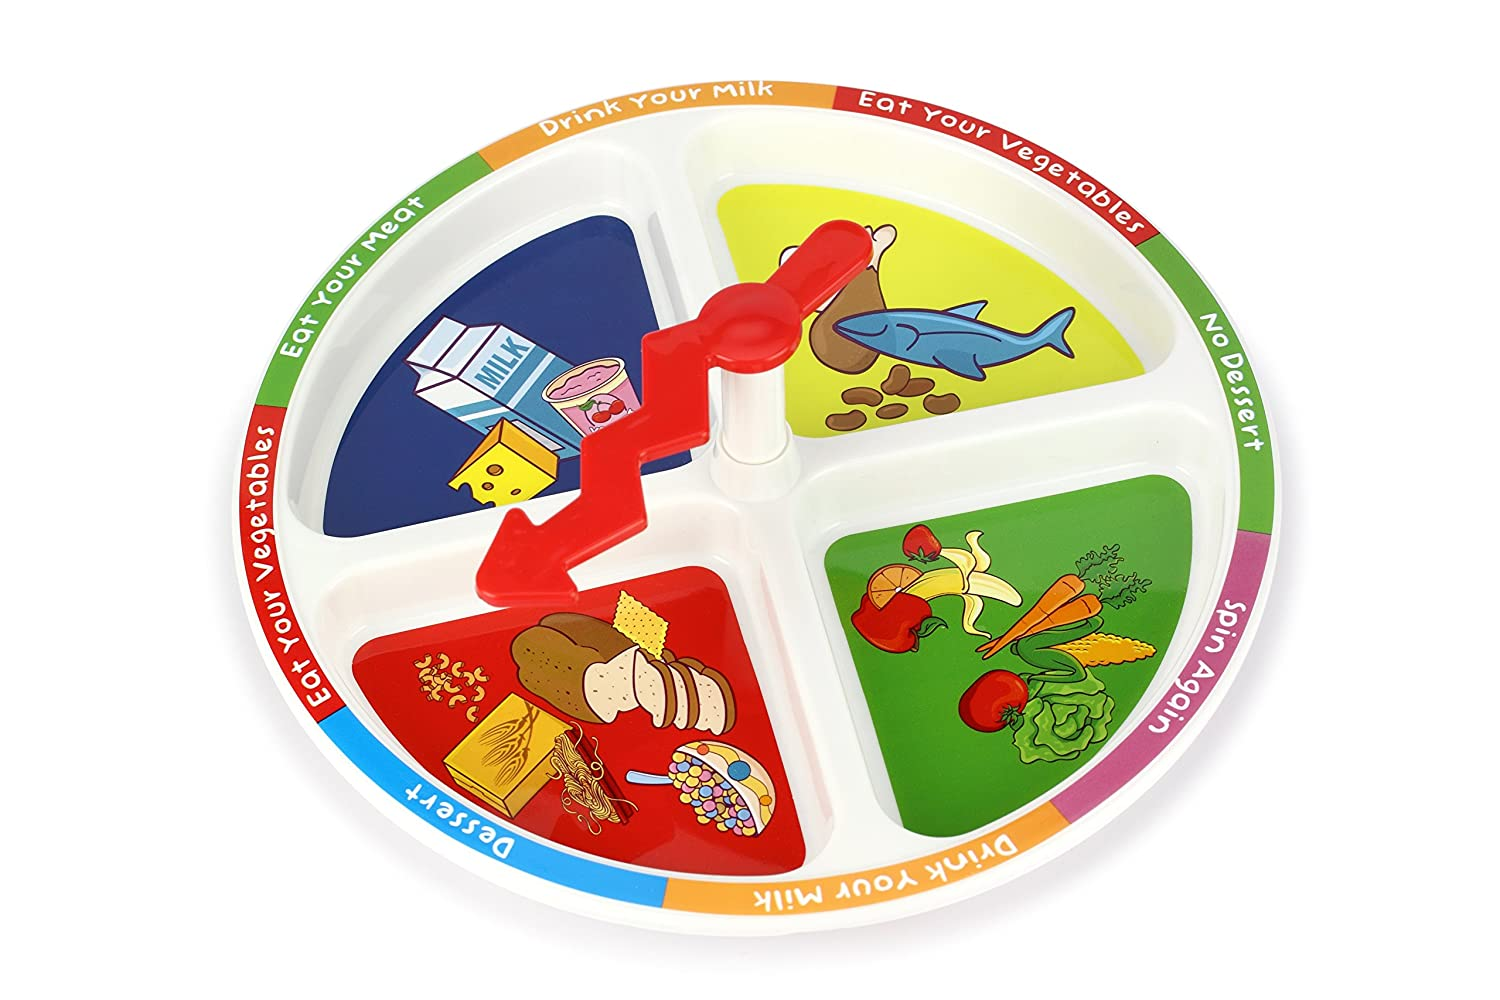 Amazon.com | KidsFunwares 4-Square Meal Plate - Promotes Healthy Eating Habits - Teaches Portion Control - Encourages Creativity and Imagination at the ...  sc 1 st  Amazon.com & Amazon.com | KidsFunwares 4-Square Meal Plate - Promotes Healthy ...